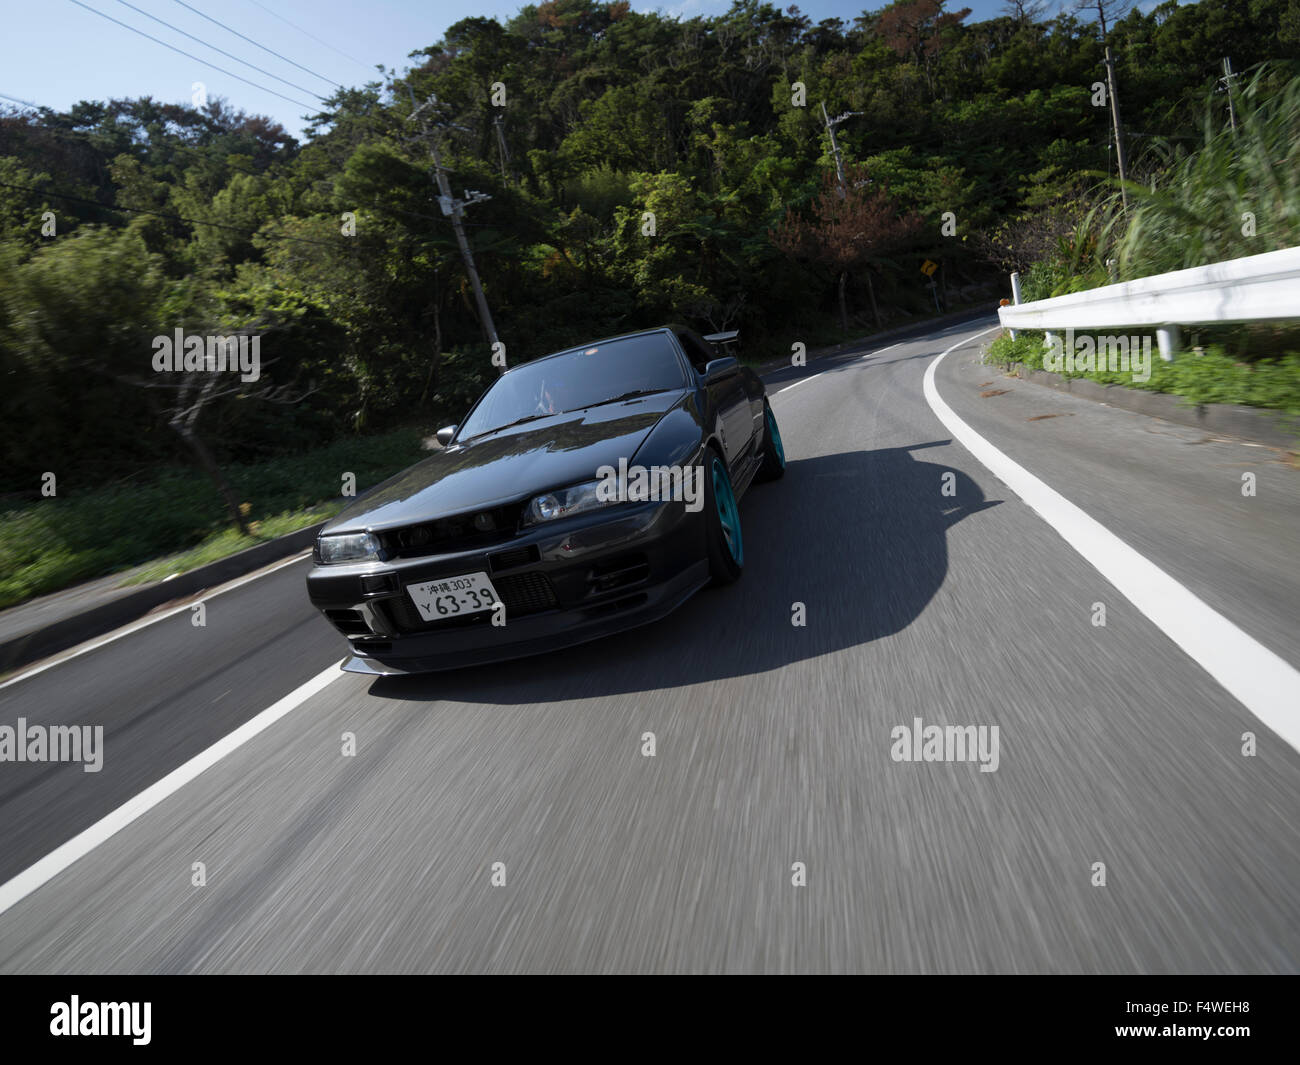 Nissan nissan sky : Nissan Skyline Stock Photos & Nissan Skyline Stock Images - Alamy